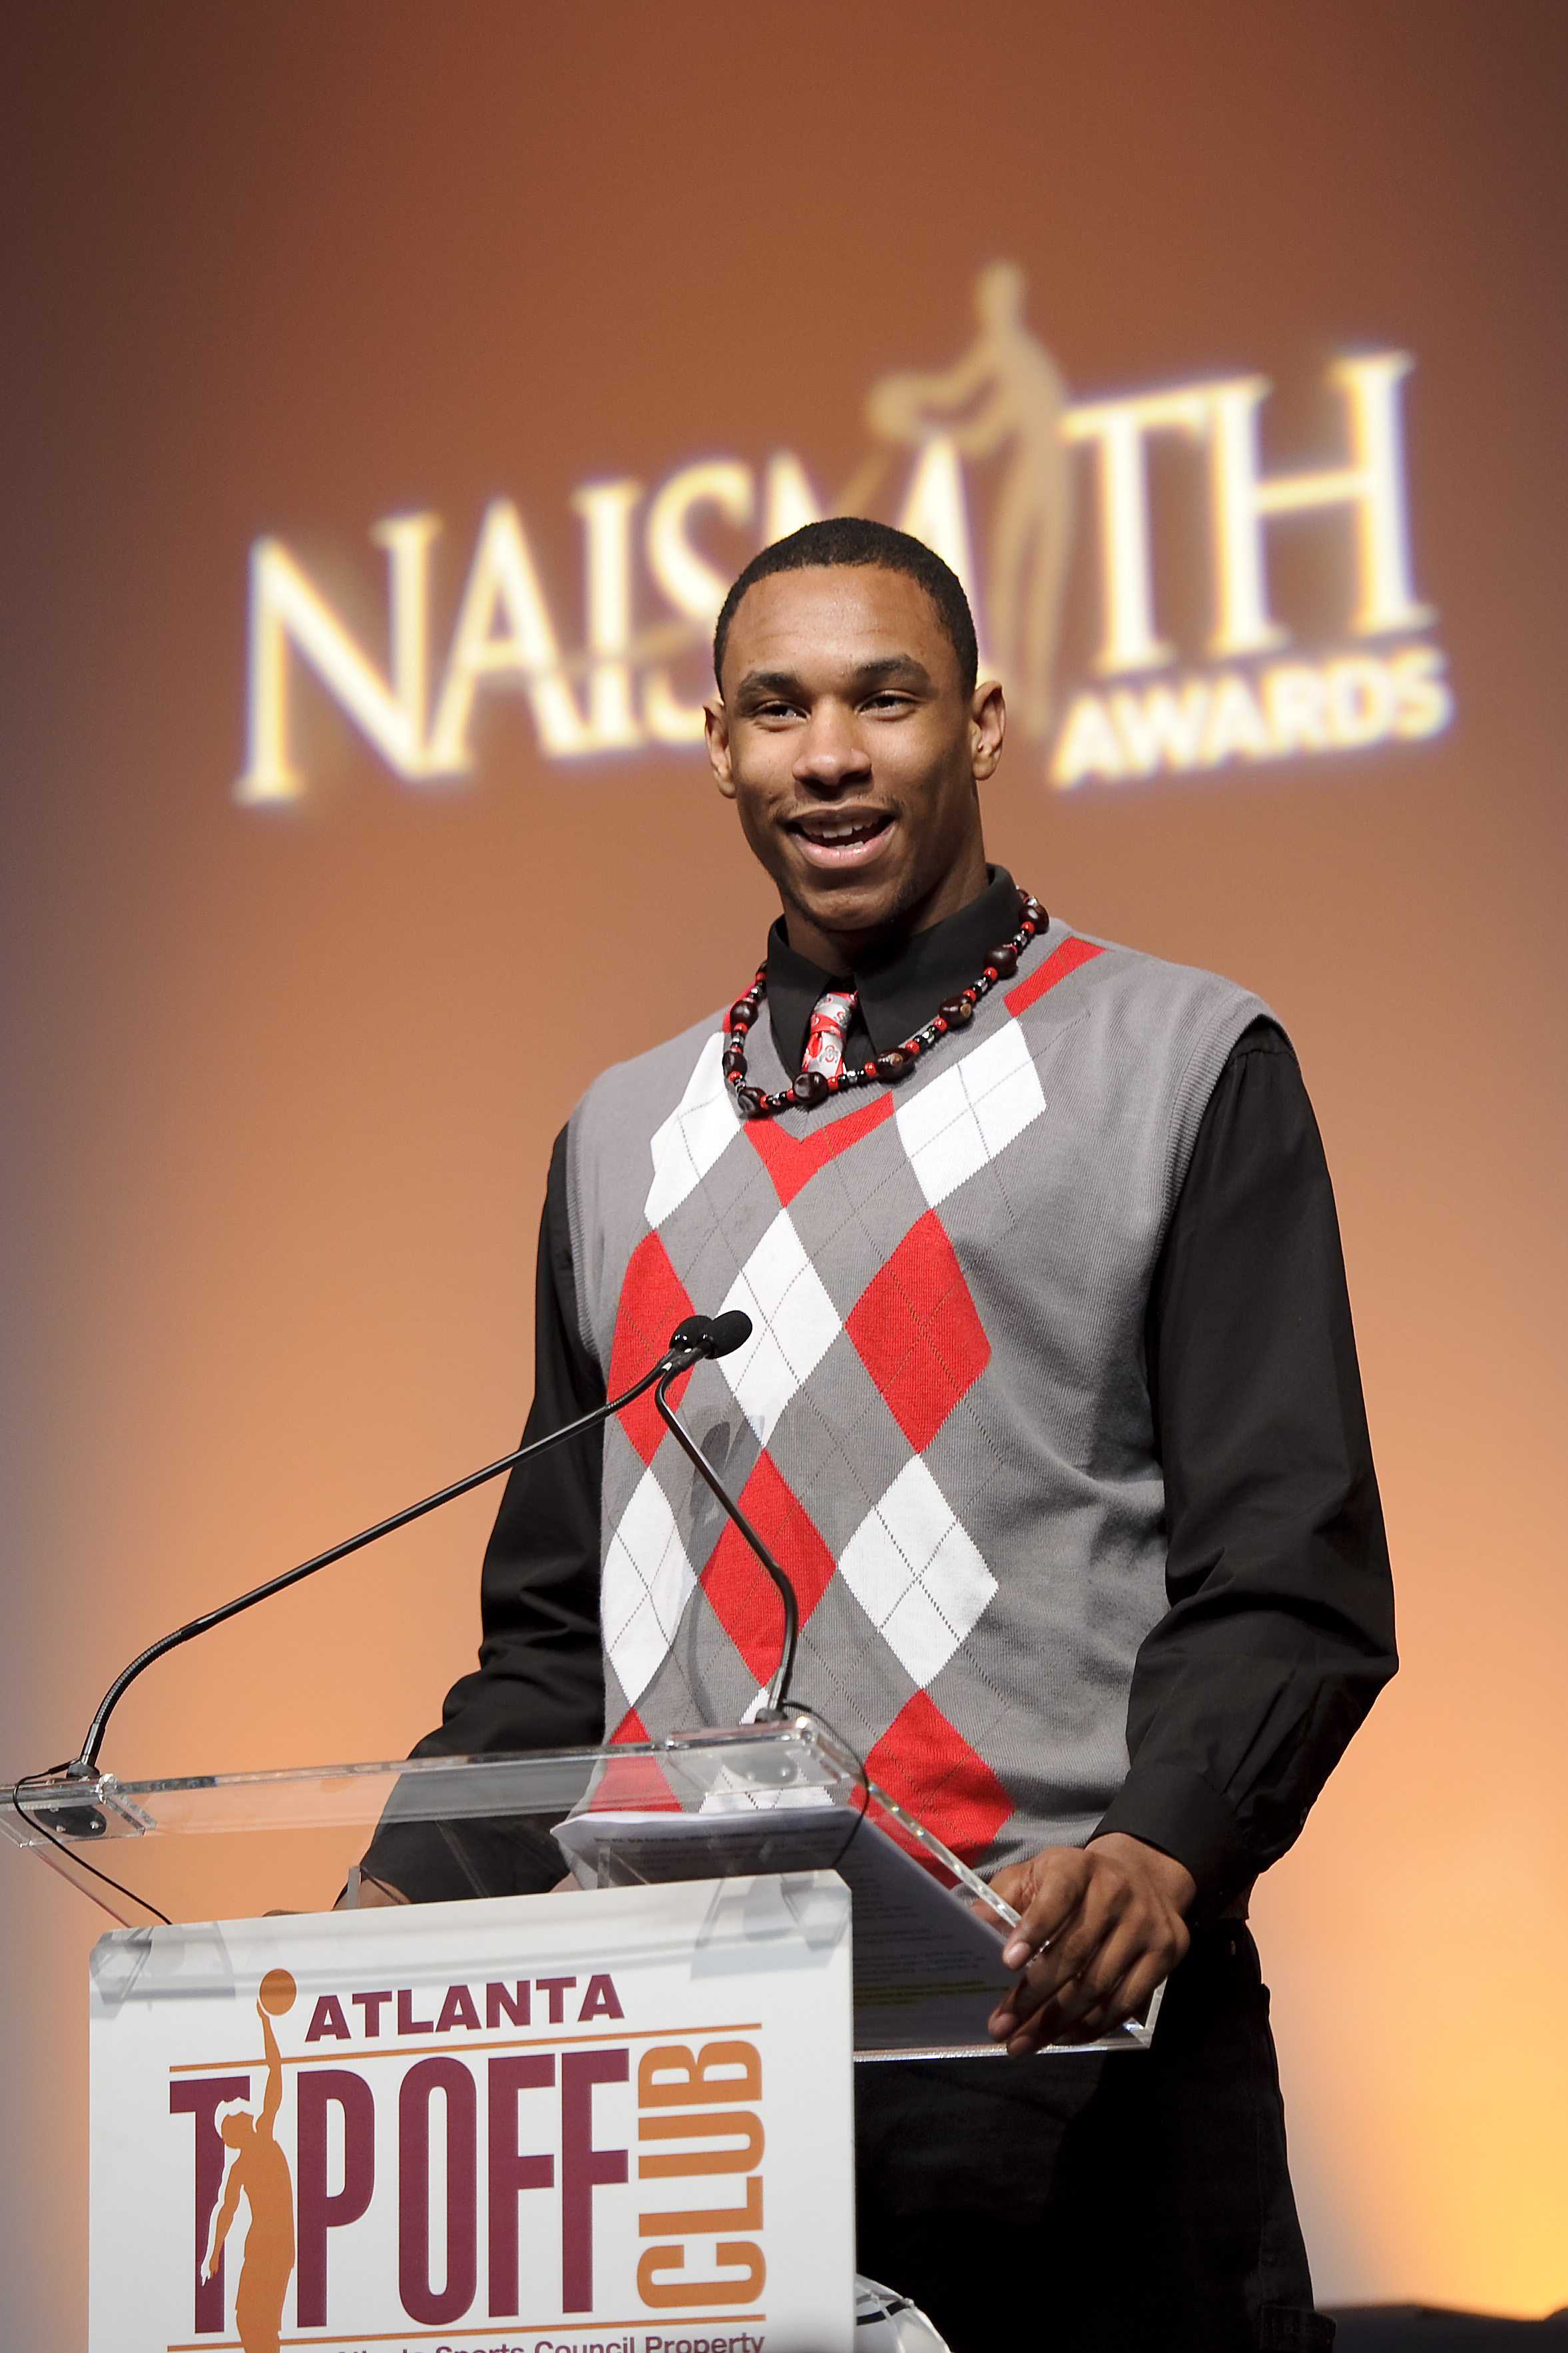 ATLANTA - MARCH 23: Jared Sullinger of Northland High School in Columbus, Ohio speaks at the Atlanta Tipoff Club Naismith Award Banquet at the Cobb Energy Performing Arts Center on March 23, 2010 in Atlanta, Georgia. Jared was the Boy's winner for the 'Na